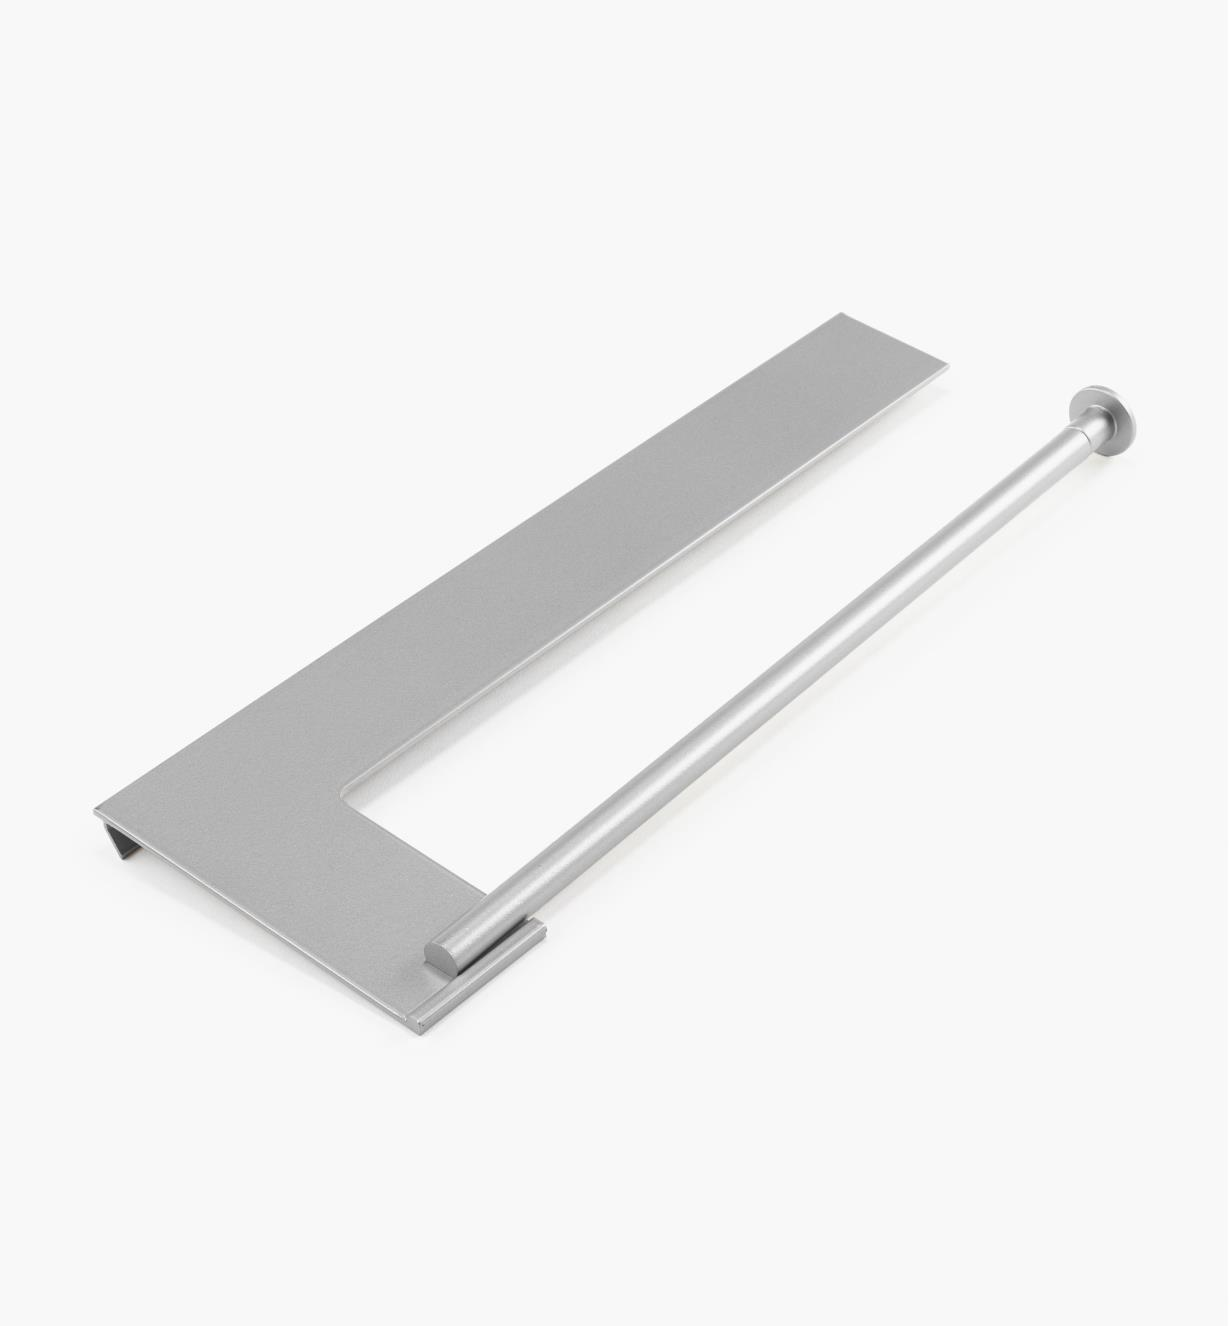 12K5121 - Aluminum Wall-Mount Paper Towel Rack